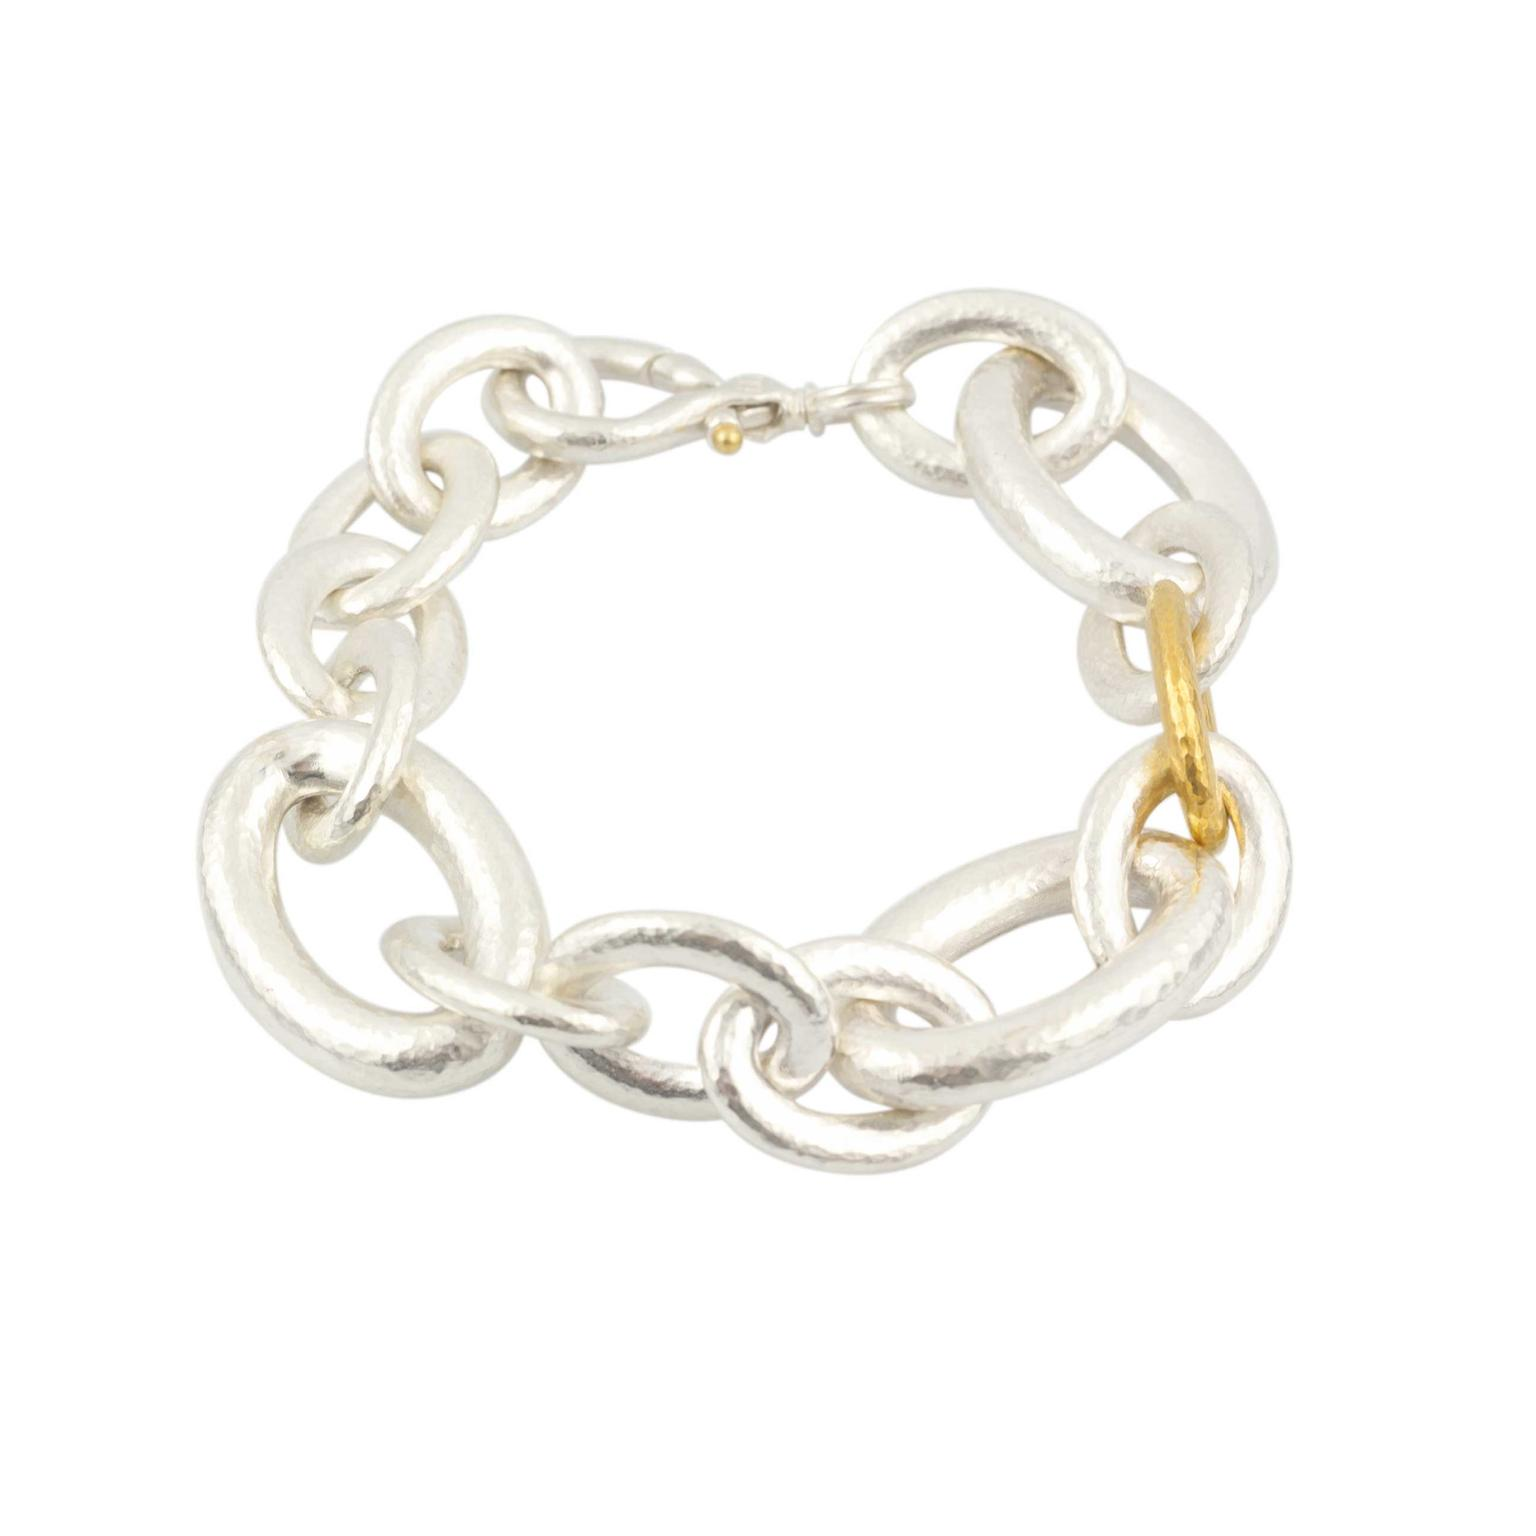 Gurhan Galahad Mixed Size Oval Bracelet in Sterling Silver Layered with 24ct Gold